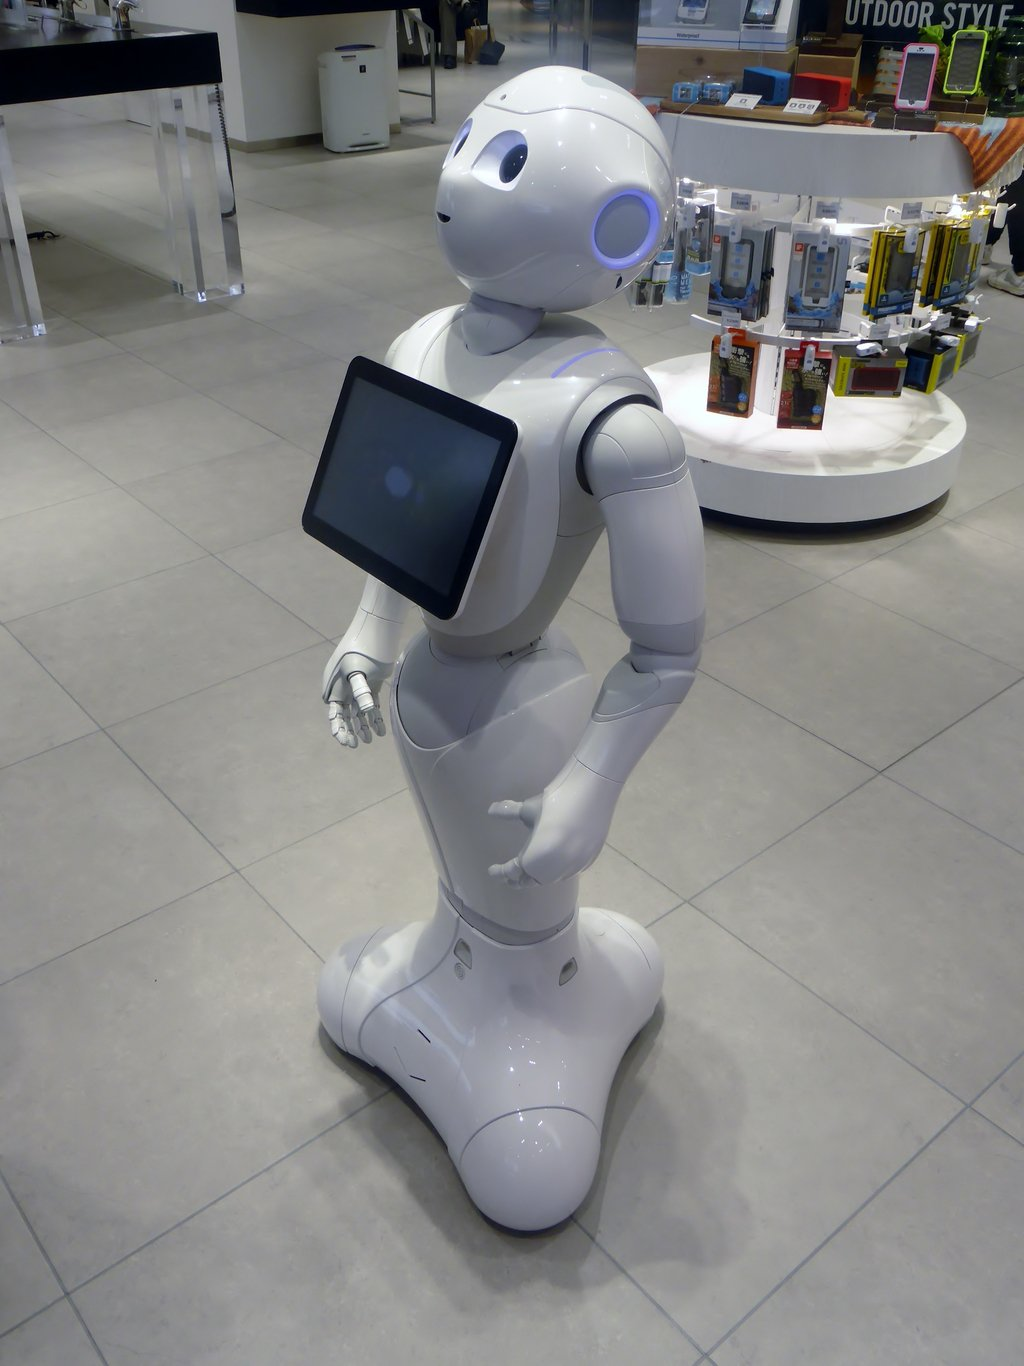 How Robots Could Help the Elderly Age in Their Homes